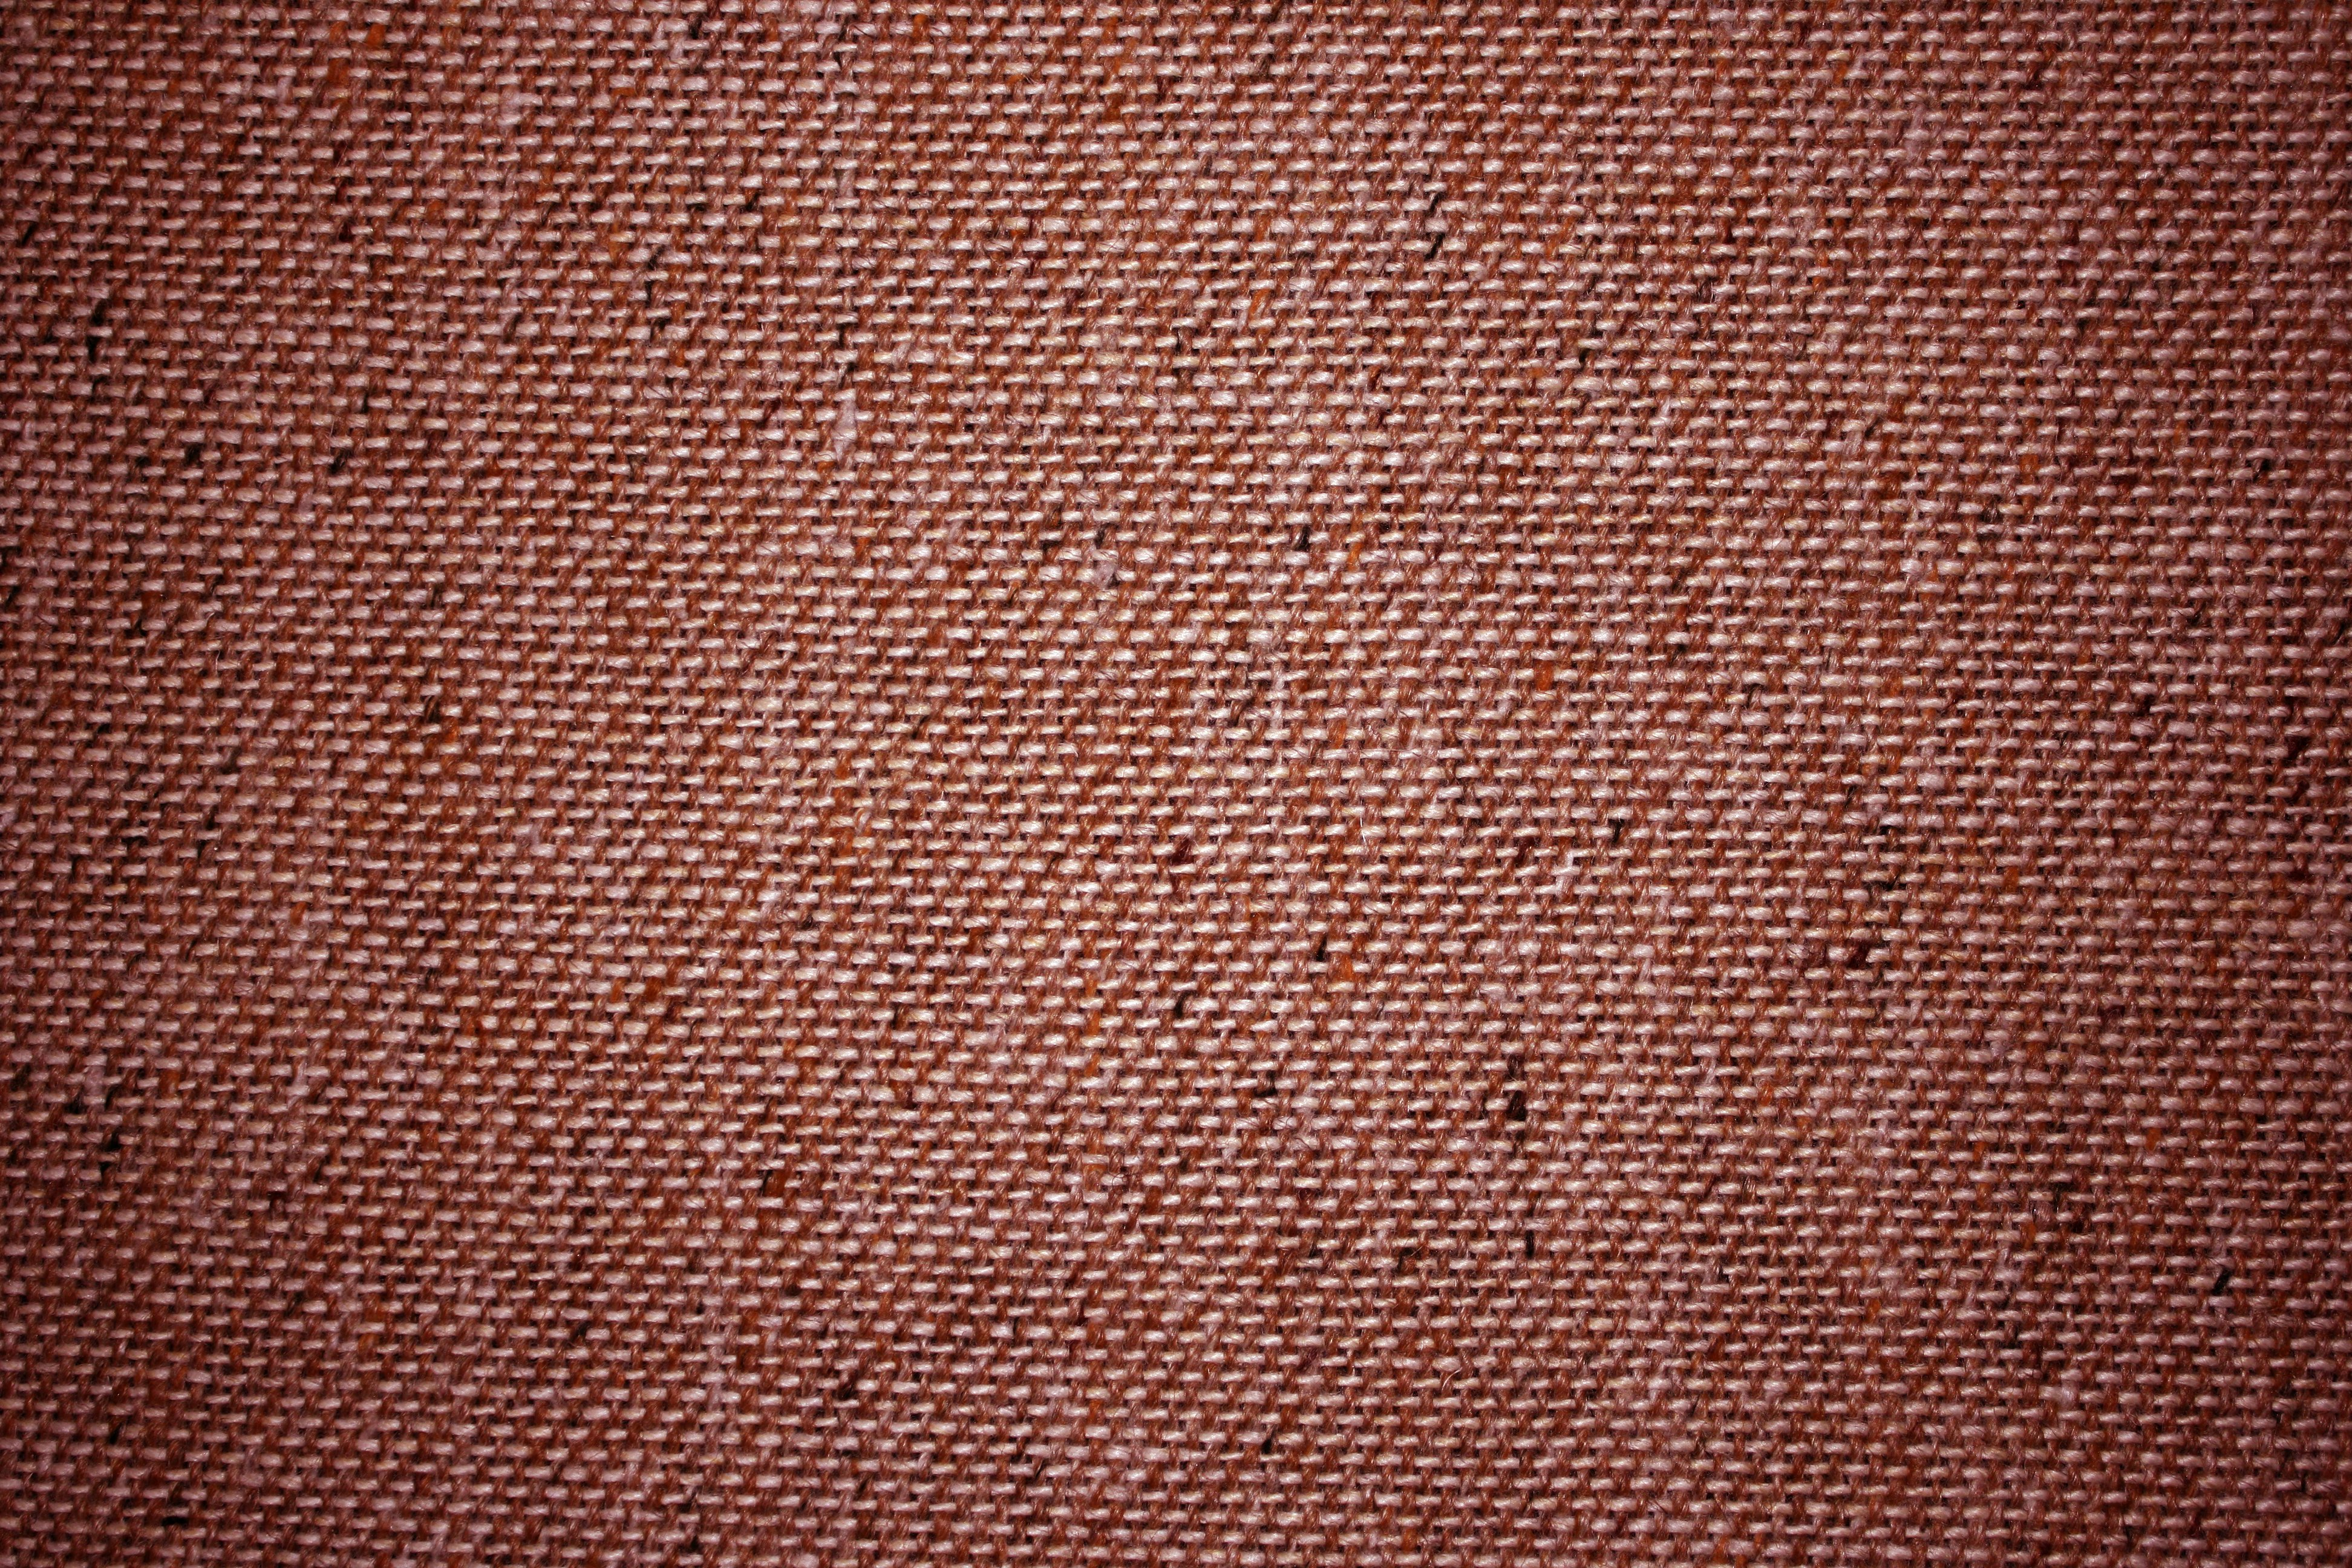 Pink fabric texture free high resolution photo dimensions 3888 - Brown Upholstery Fabric Close Up Texture